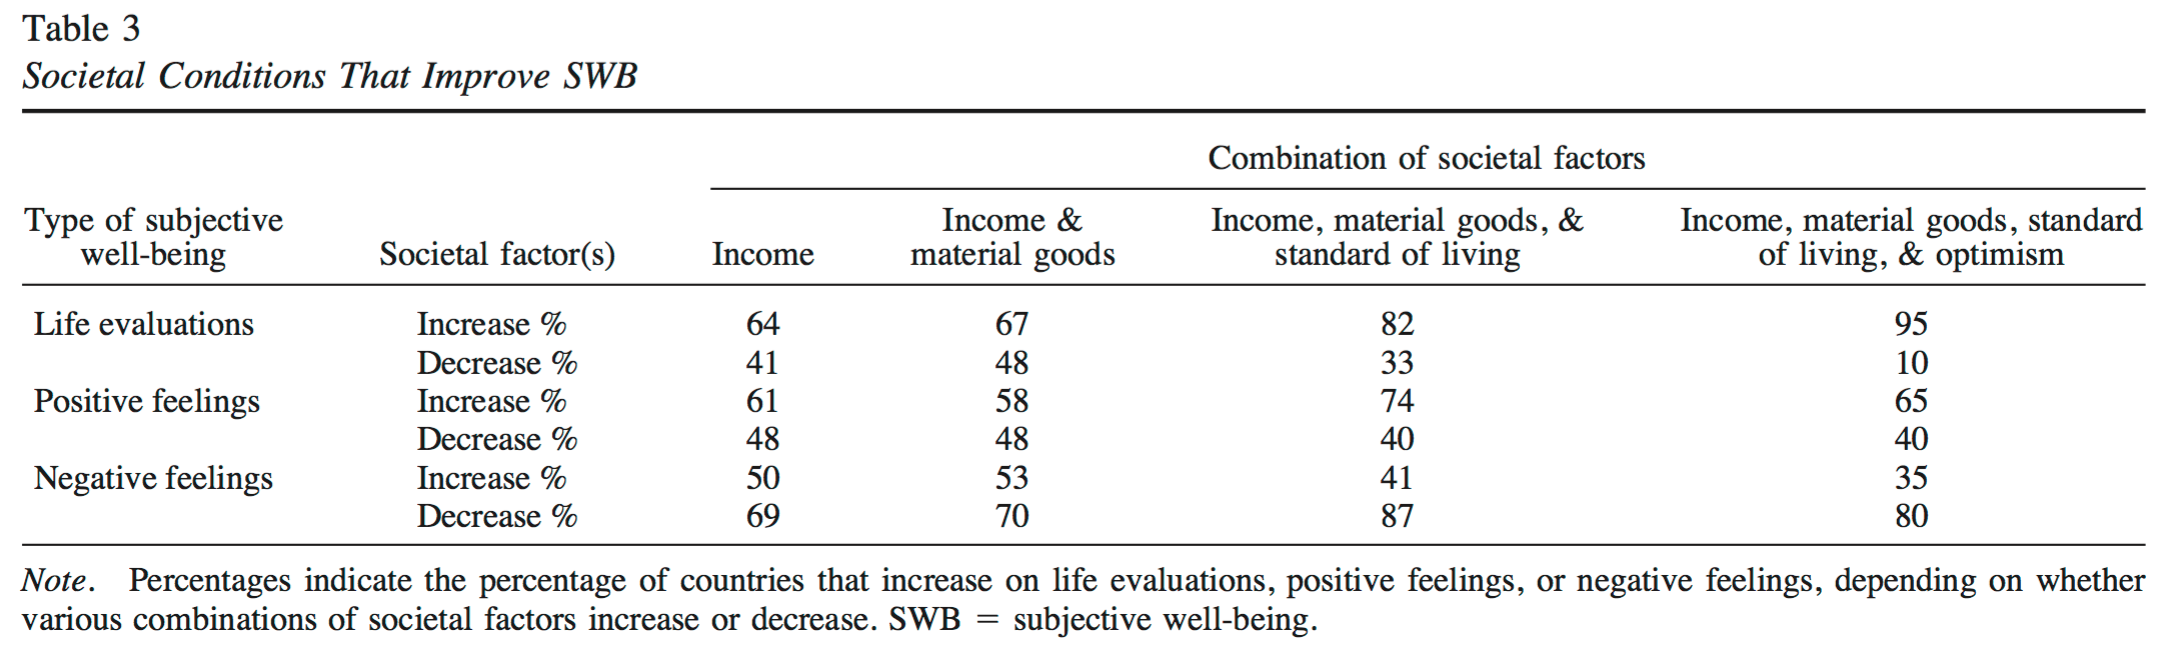 Source: Diener, Tay and Oishi (2013). Rising income and the Subjective Well-Being of nations. Journal of Personality and Social Psychology, 104(2): 267-276. From: https://www.apa.org/pubs/journals/releases/psp-104-2-267.pdf